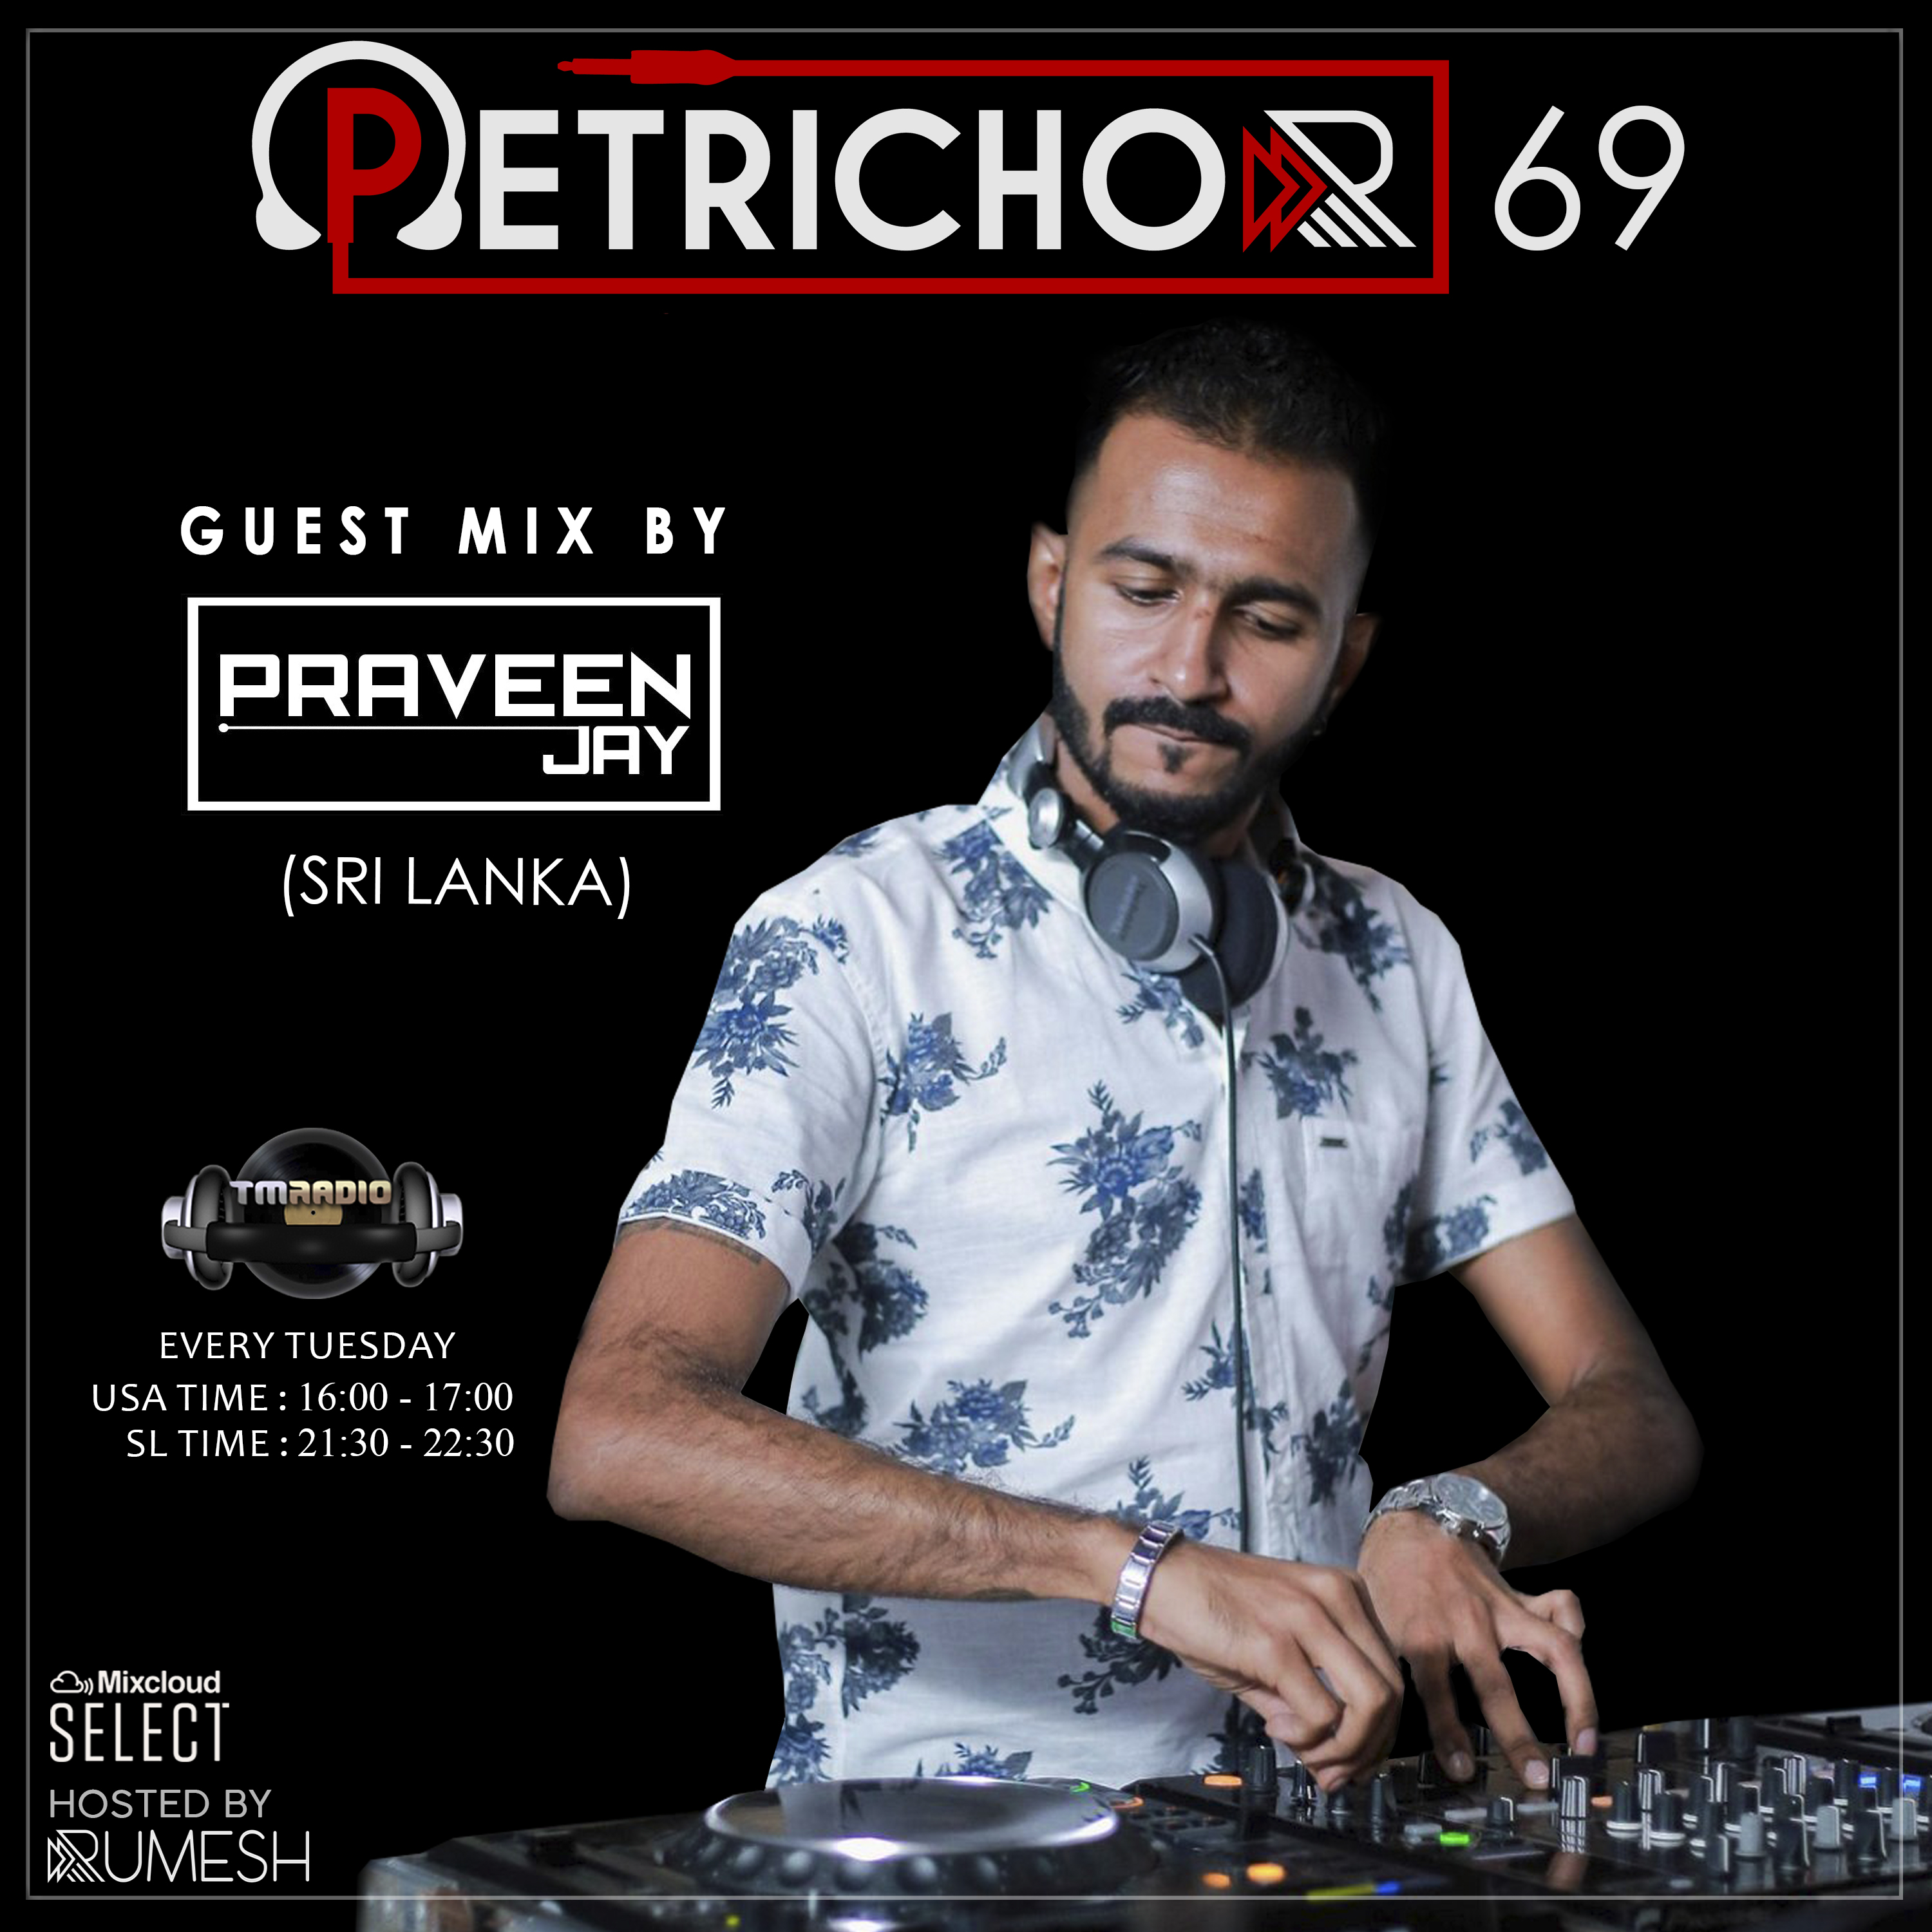 Petrichor :: Petrichor 69 guest mix by Praveen Jay (Sri Lanka) (aired on March 3rd) banner logo